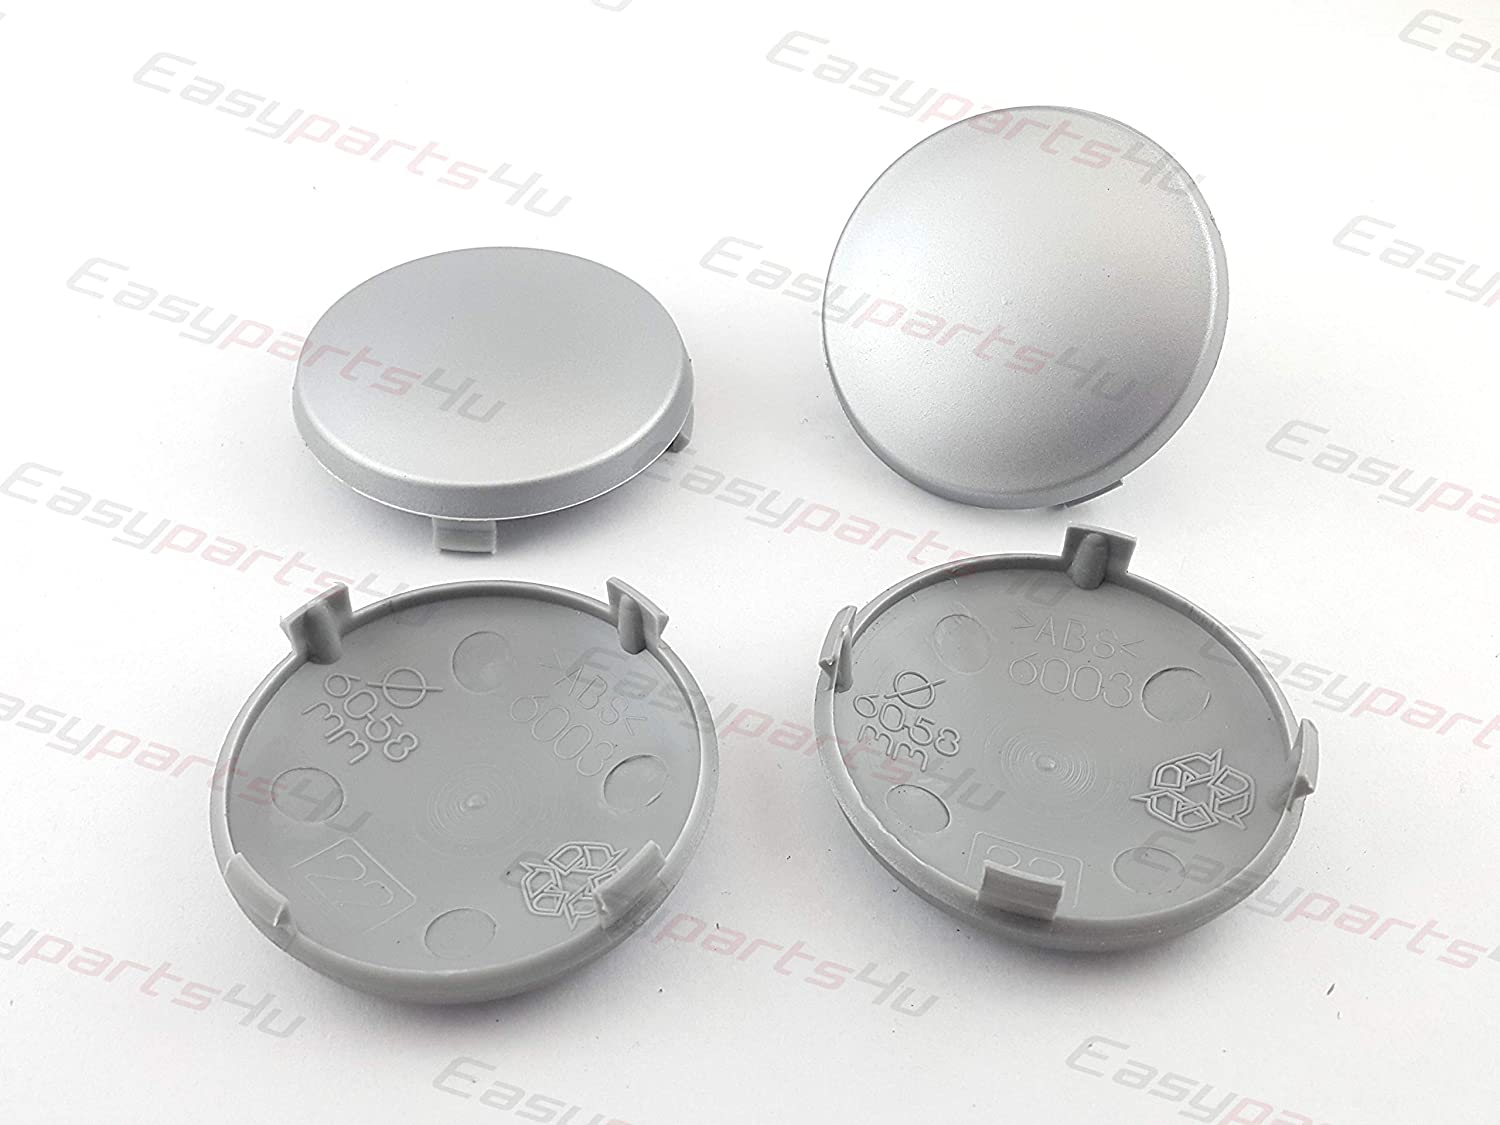 57mm for ALLOY WHEEL HUB A25-22 59mm greitapigu.lt 4x UNIVERSAL CENTER CAPS